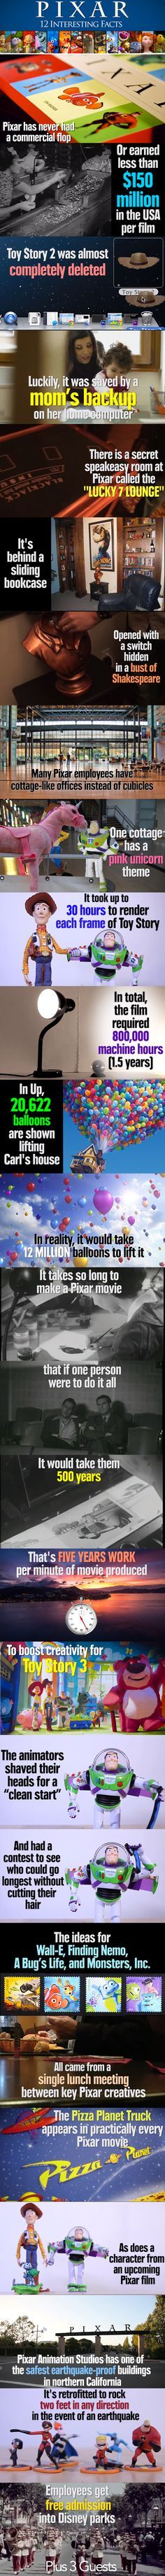 Interesting Facts about Disney's Pixar